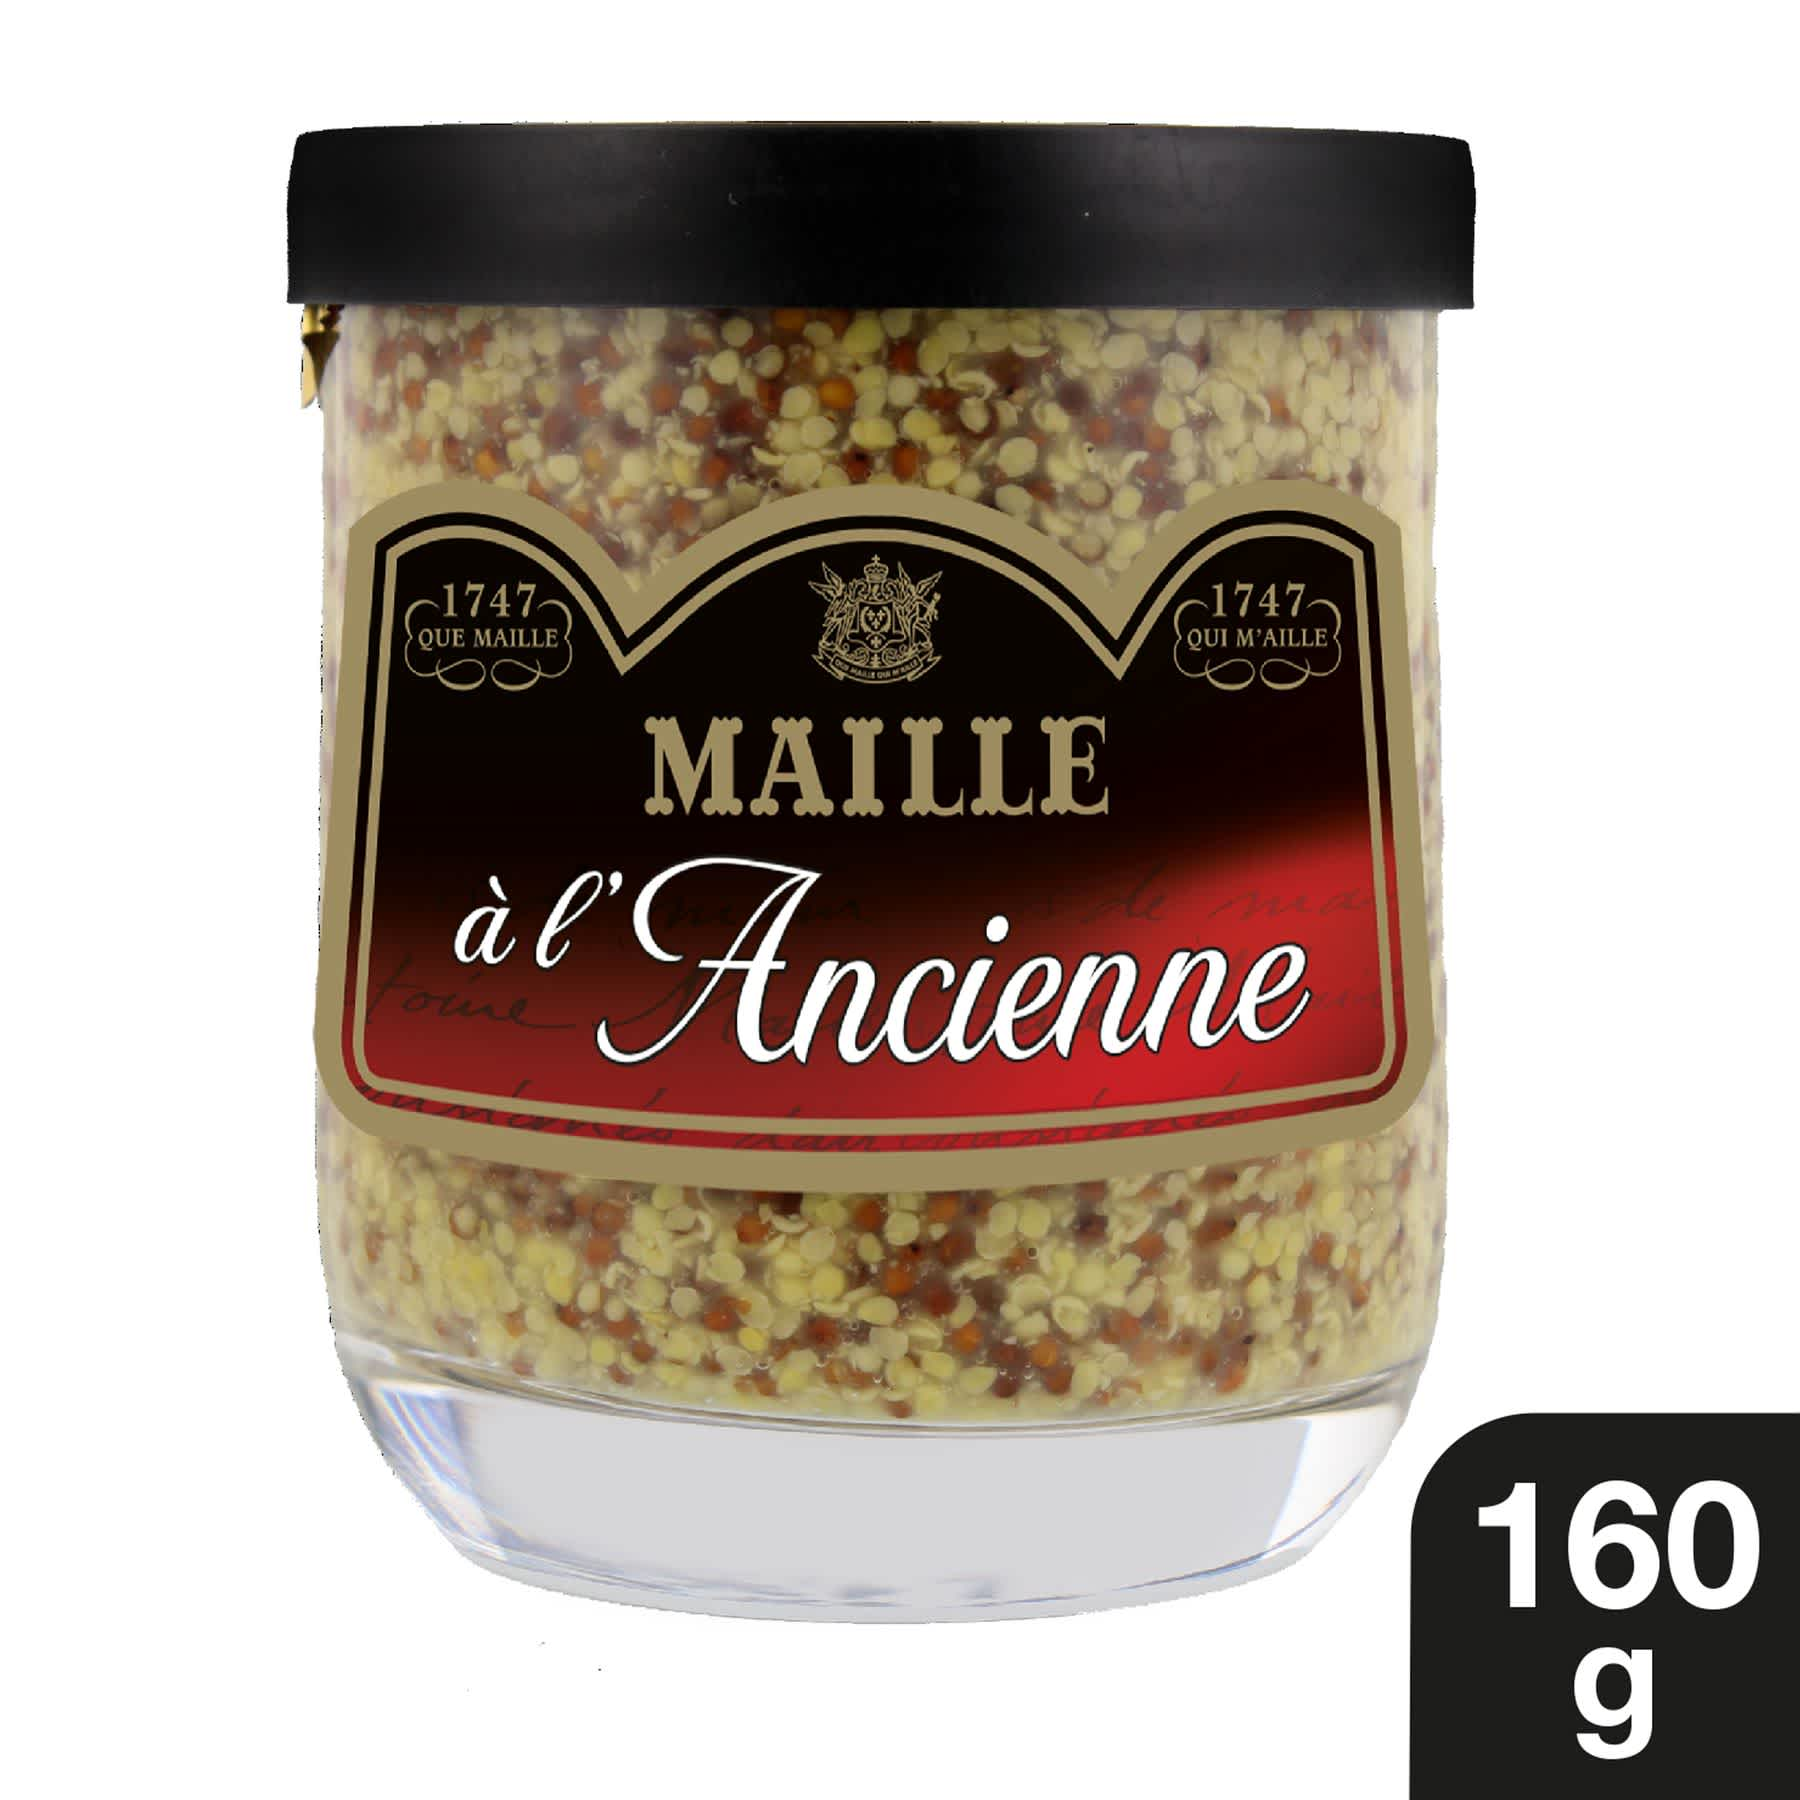 Maille - Moutarde à l'Ancienne Verrine 160 g